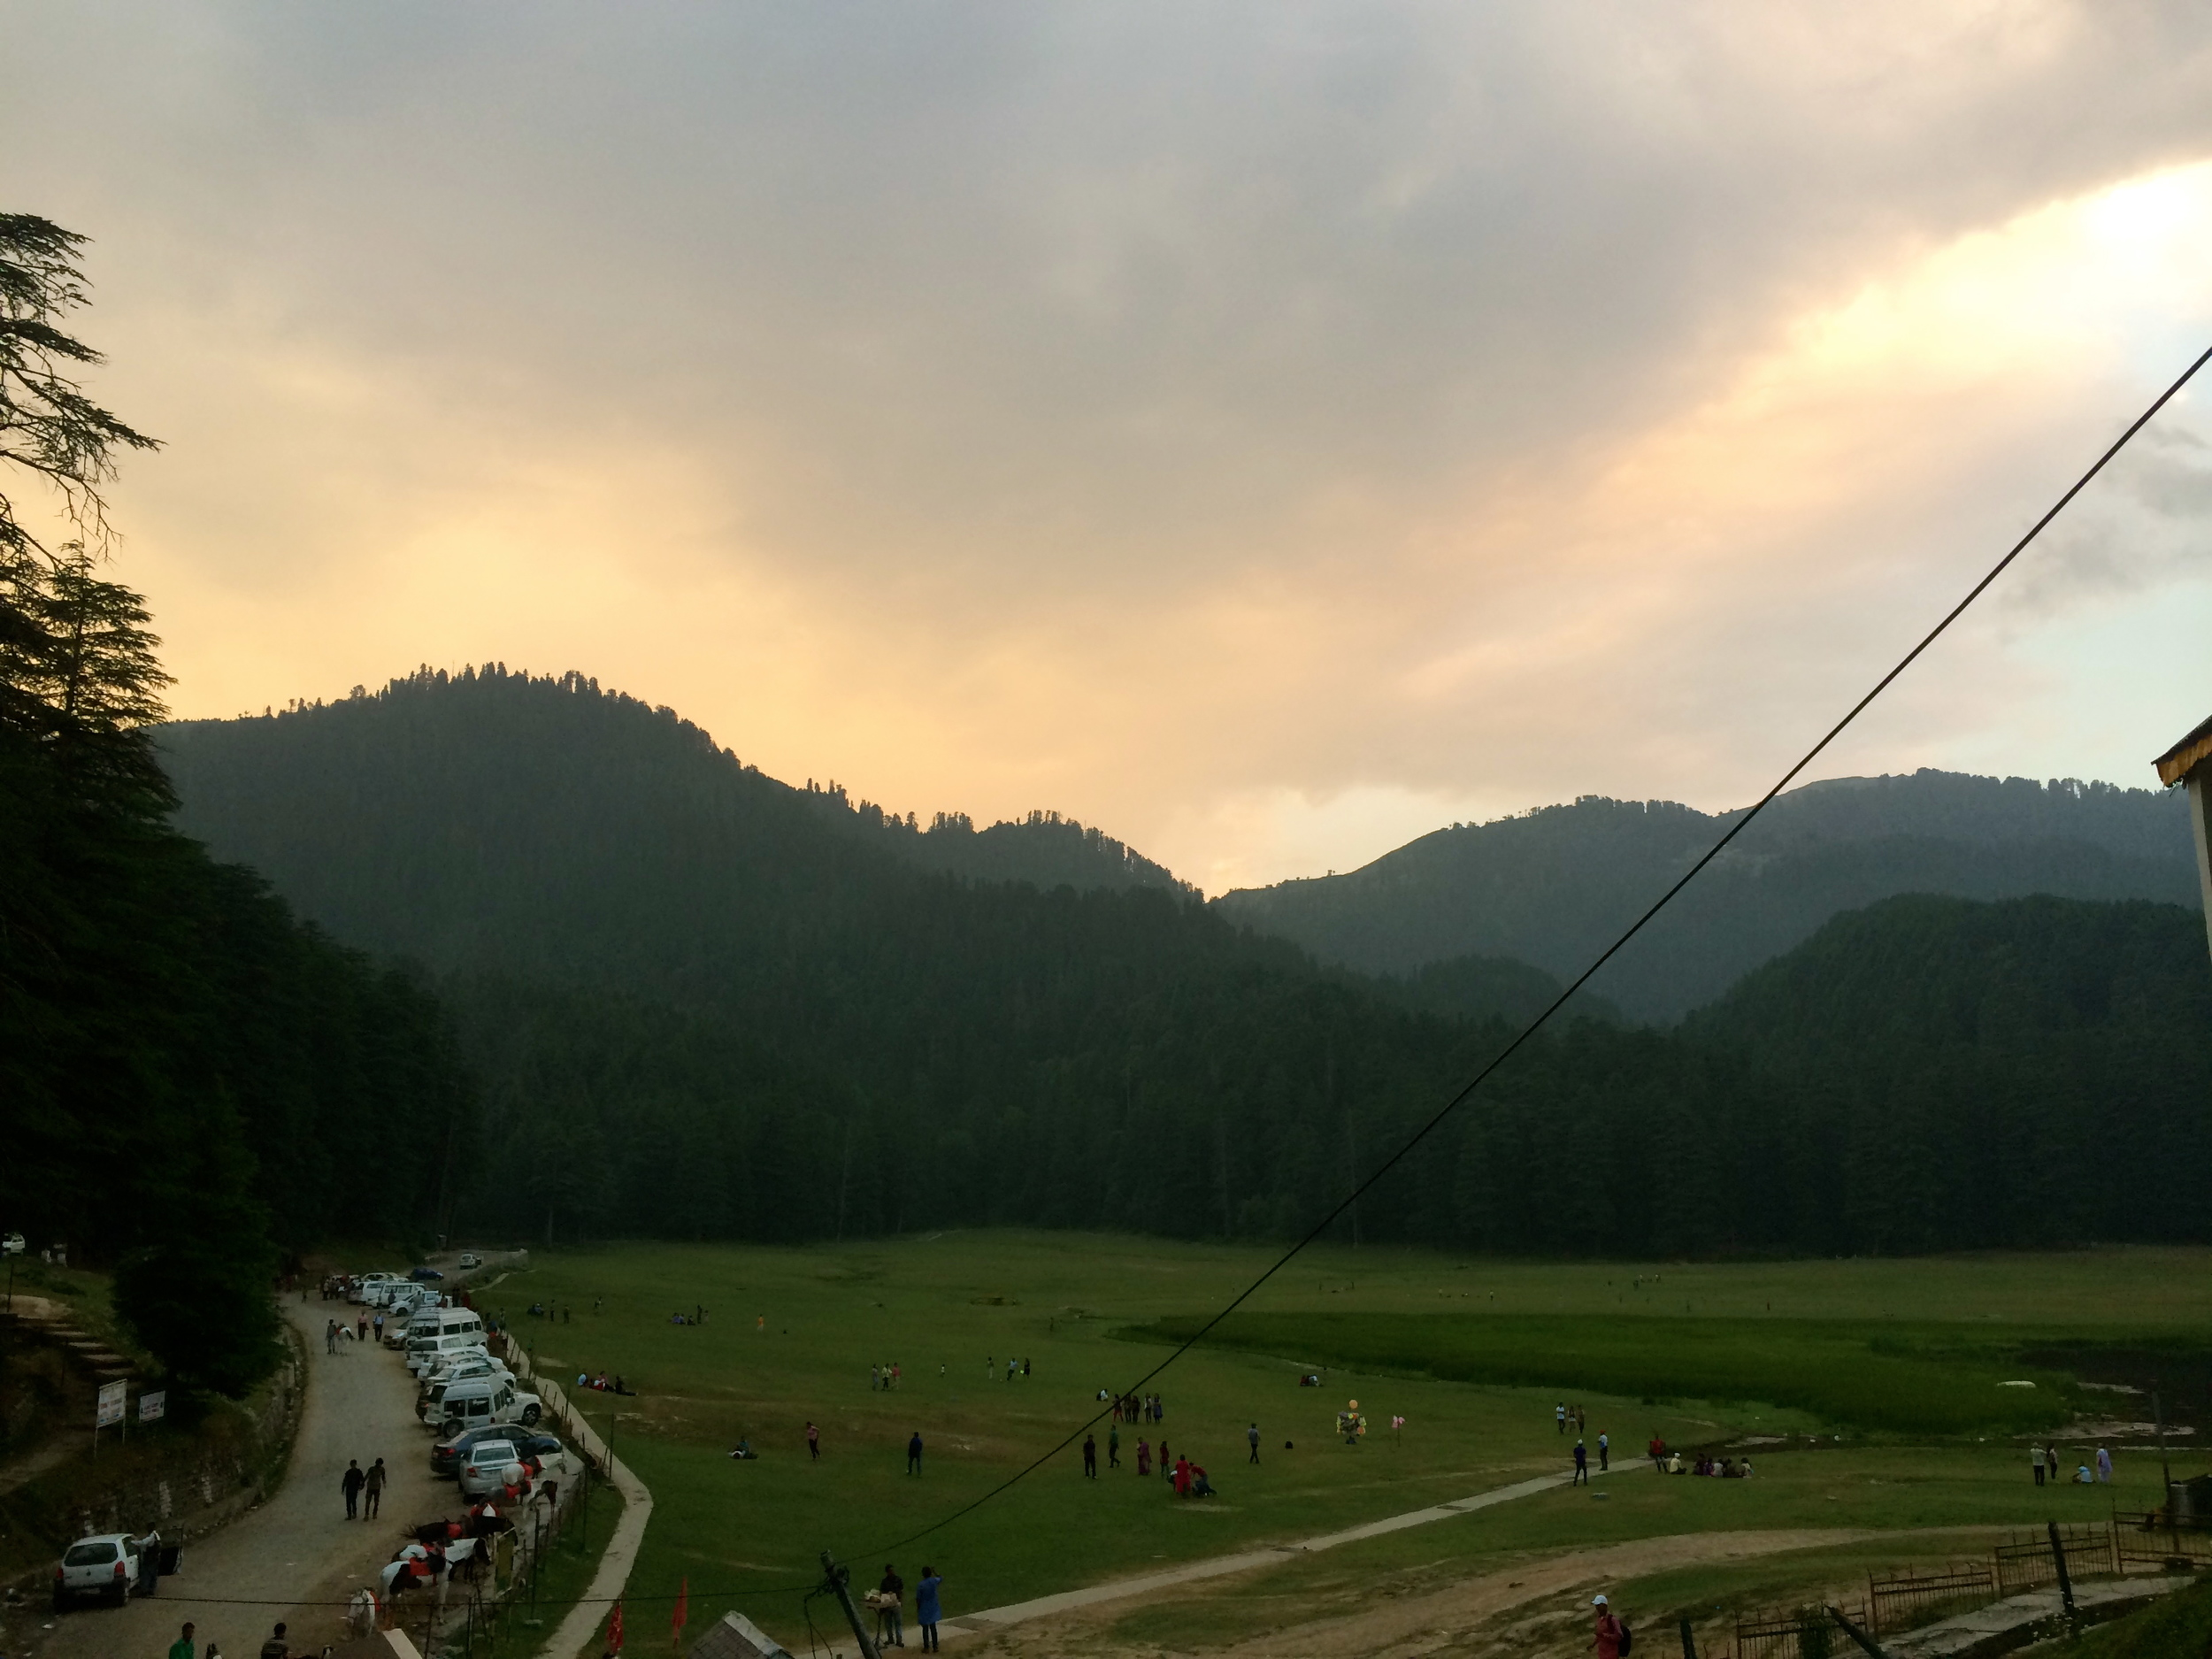 Khajjiyar by sunset!